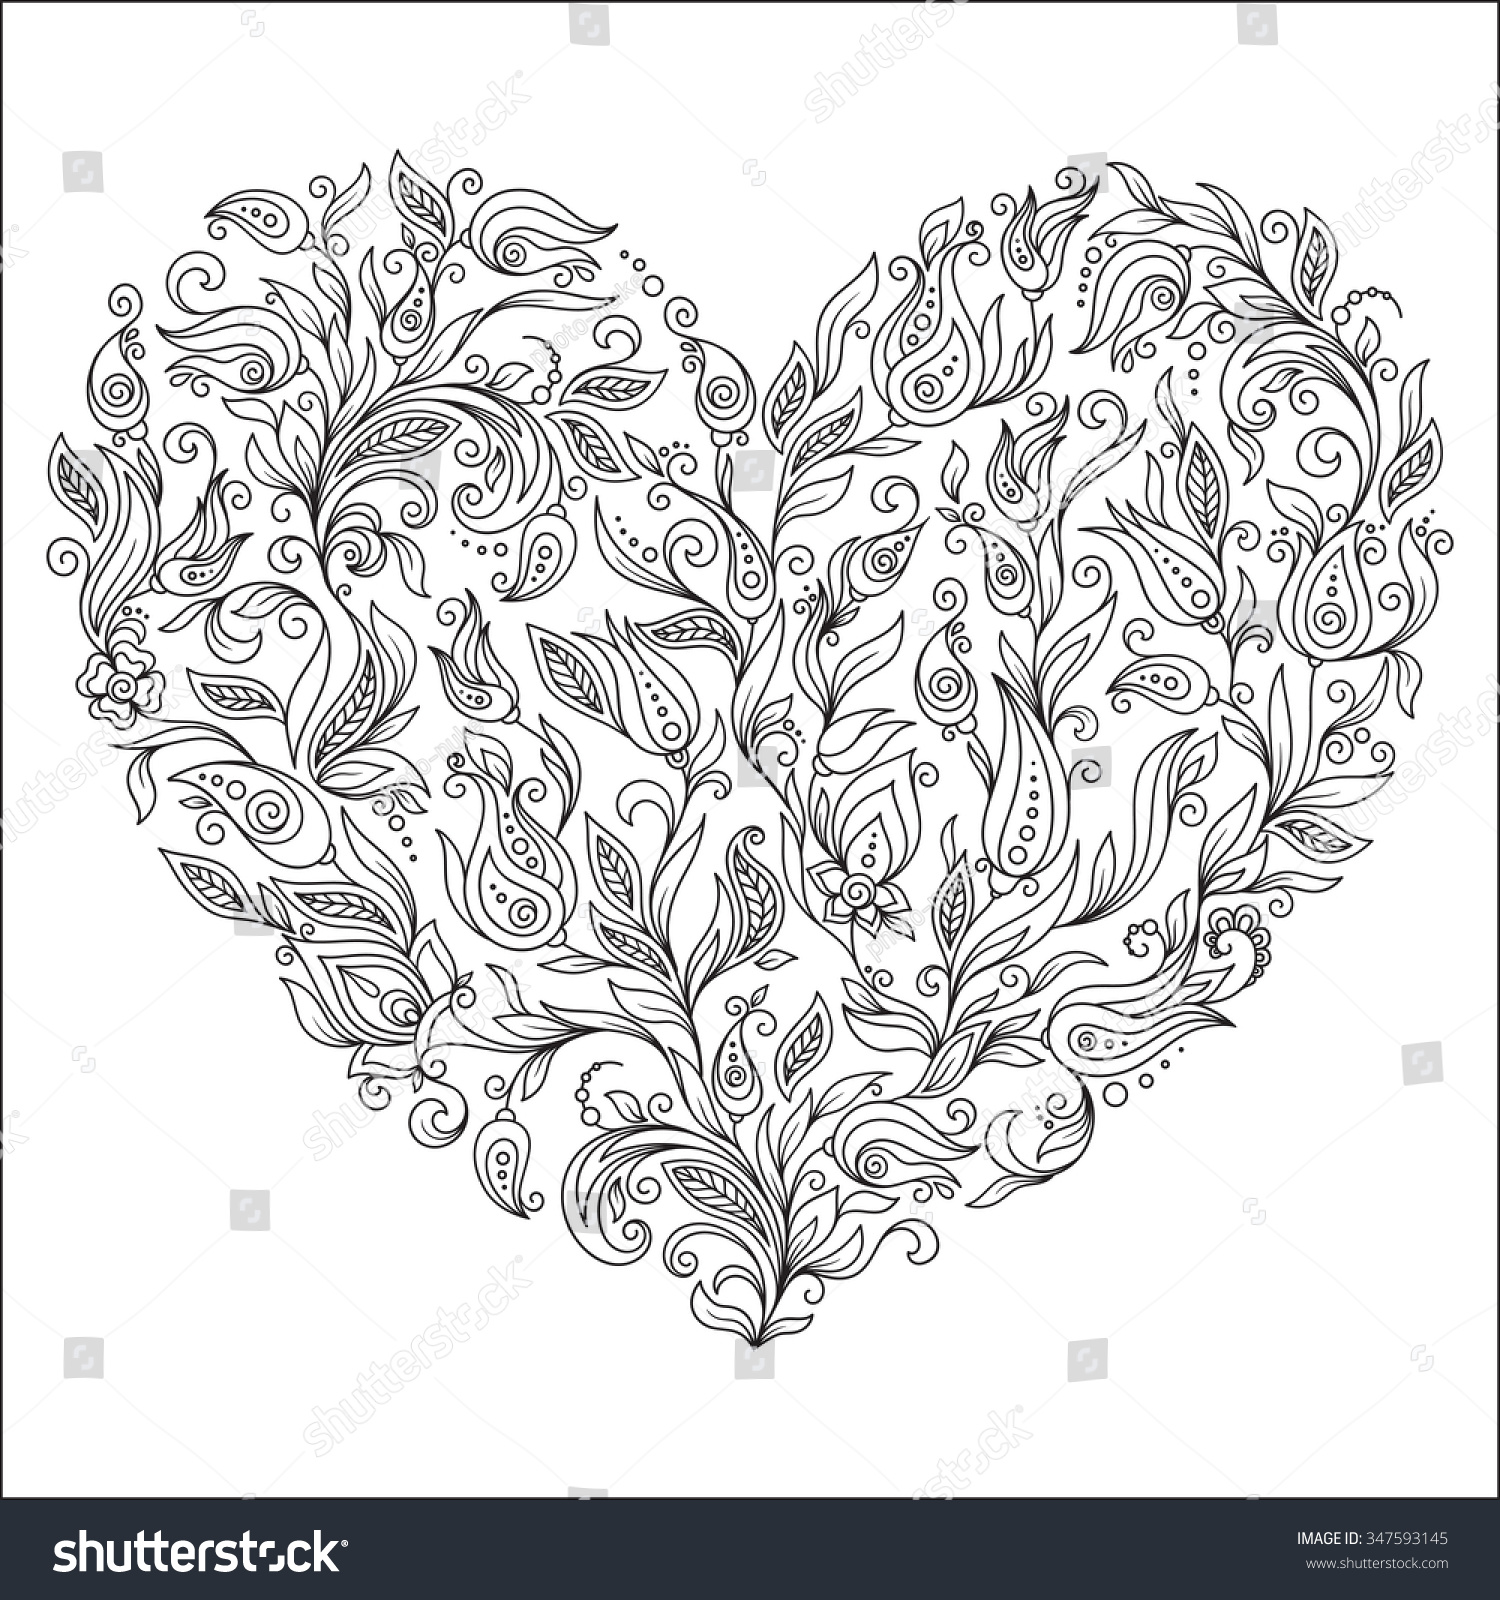 stock vector coloring page flower heart st valentine s day greeting card hand made print digital art coloring 347593145 besides adult coloring pages hearts on printable coloring pages for adults hearts along with printable coloring pages for adults hearts 2 on printable coloring pages for adults hearts as well as printable coloring pages for adults hearts 3 on printable coloring pages for adults hearts likewise printable coloring pages for adults hearts 4 on printable coloring pages for adults hearts